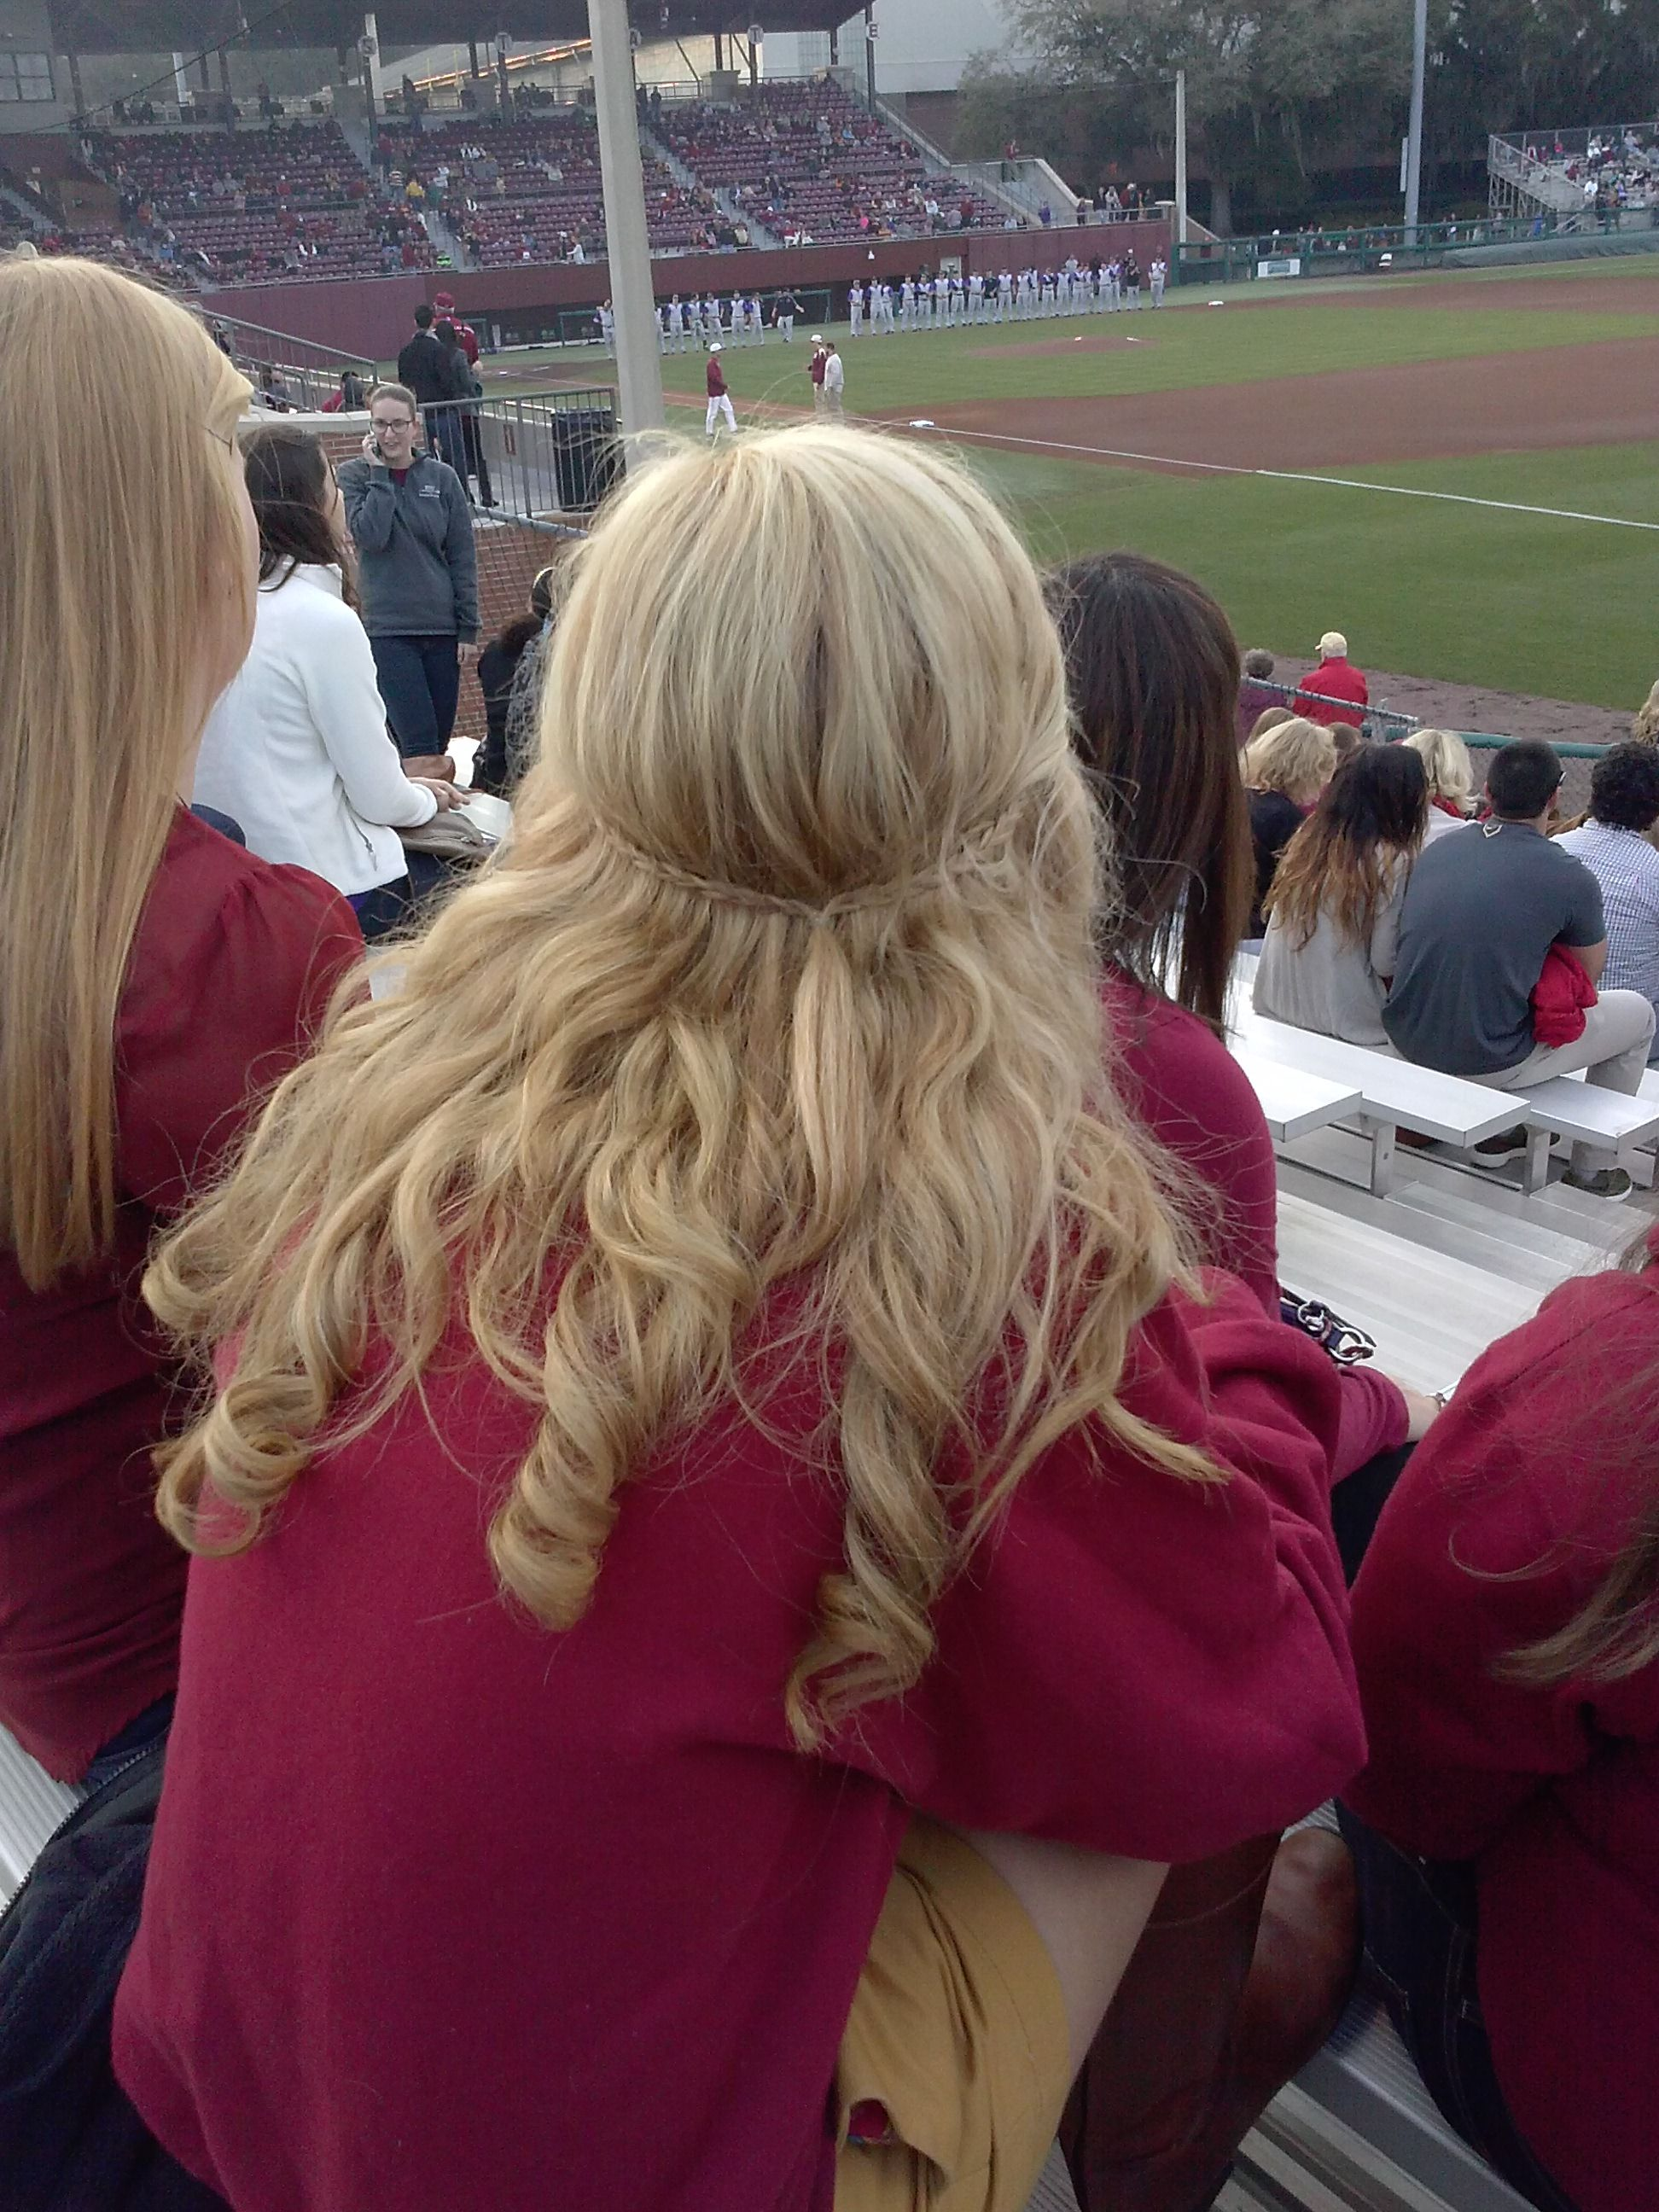 sat in front of me at a baseball game and just thought her